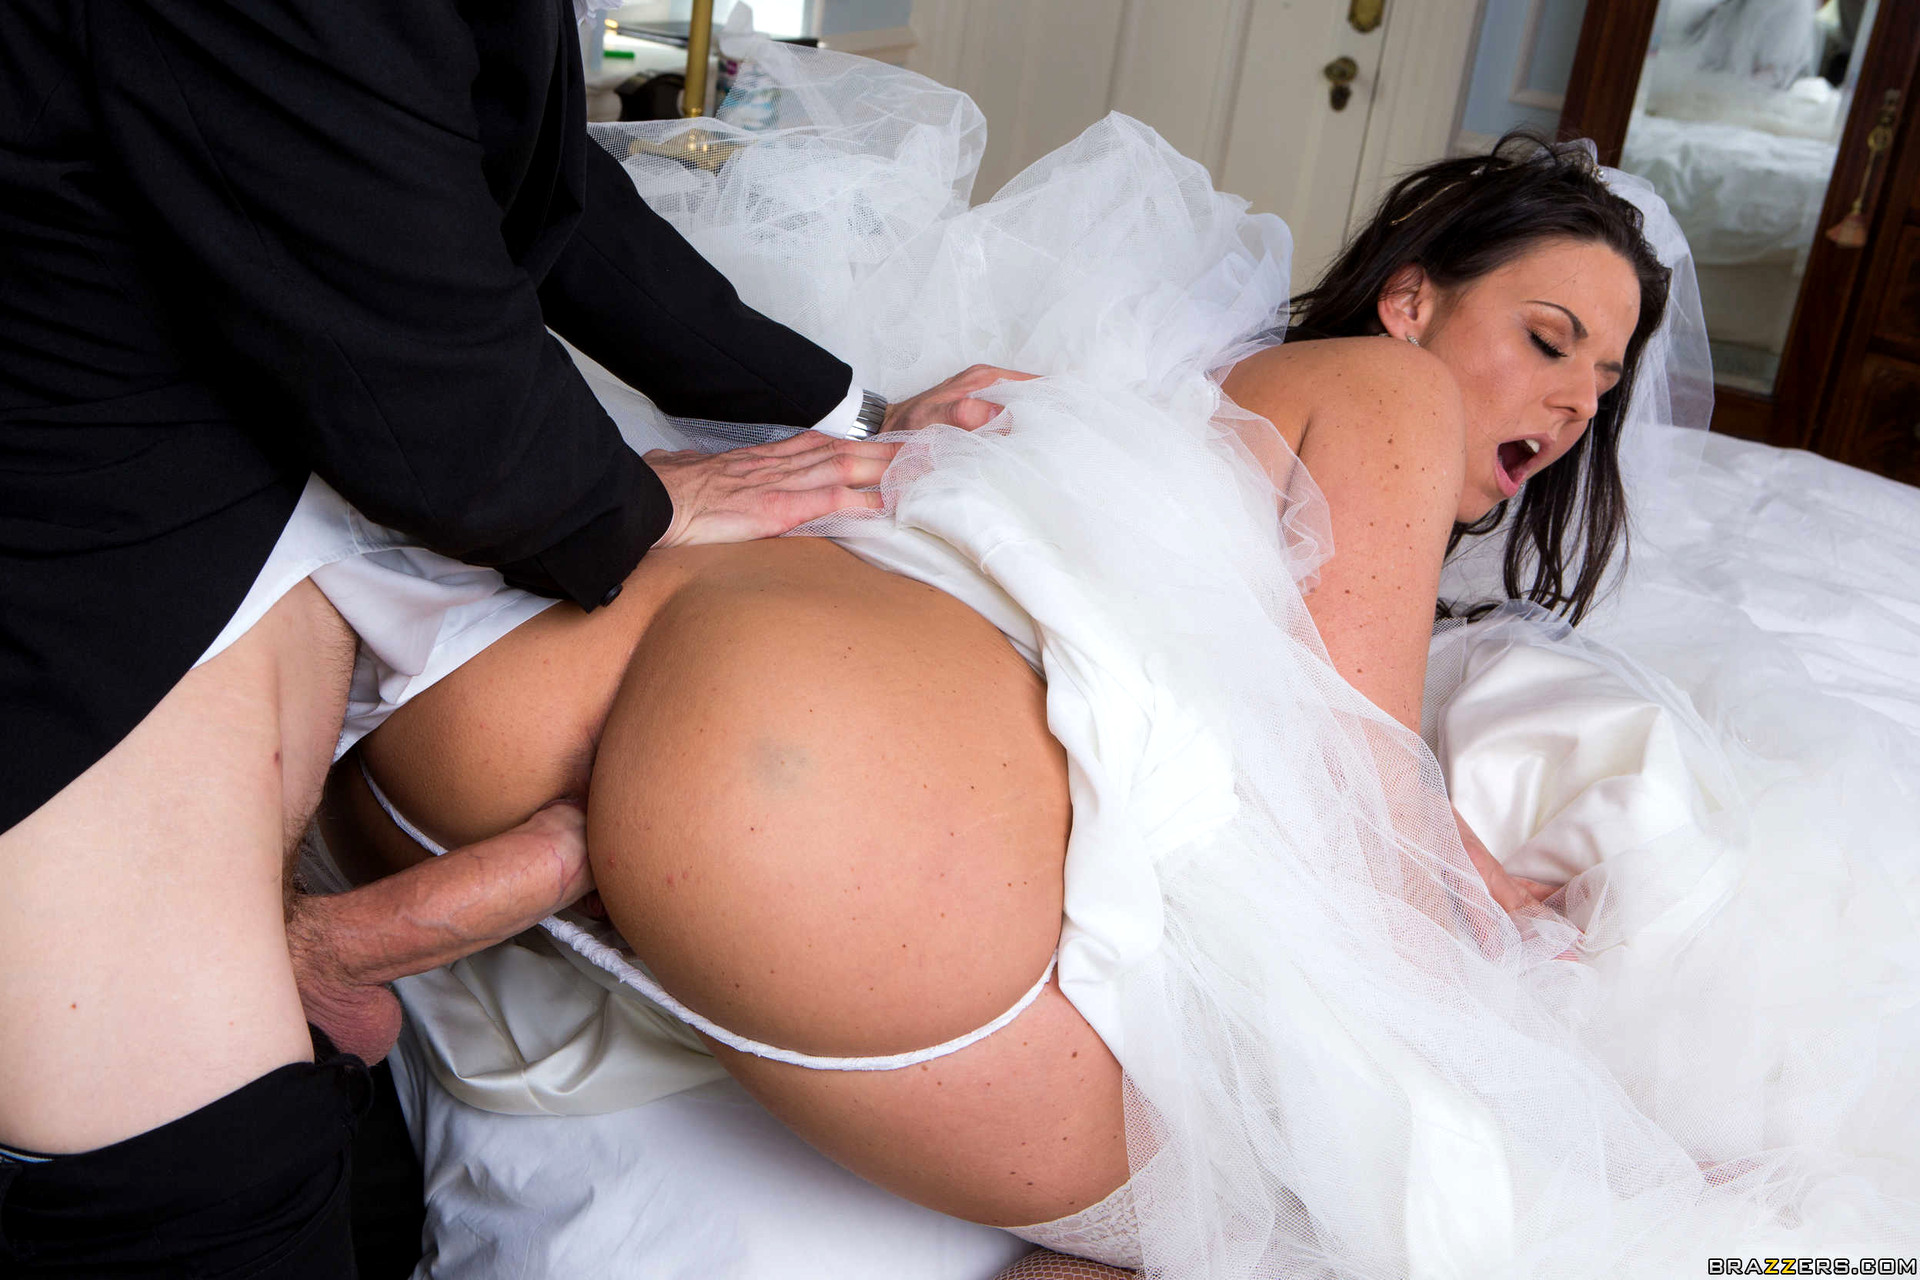 bride-sex-free-porno-site-young-amateurs-girls